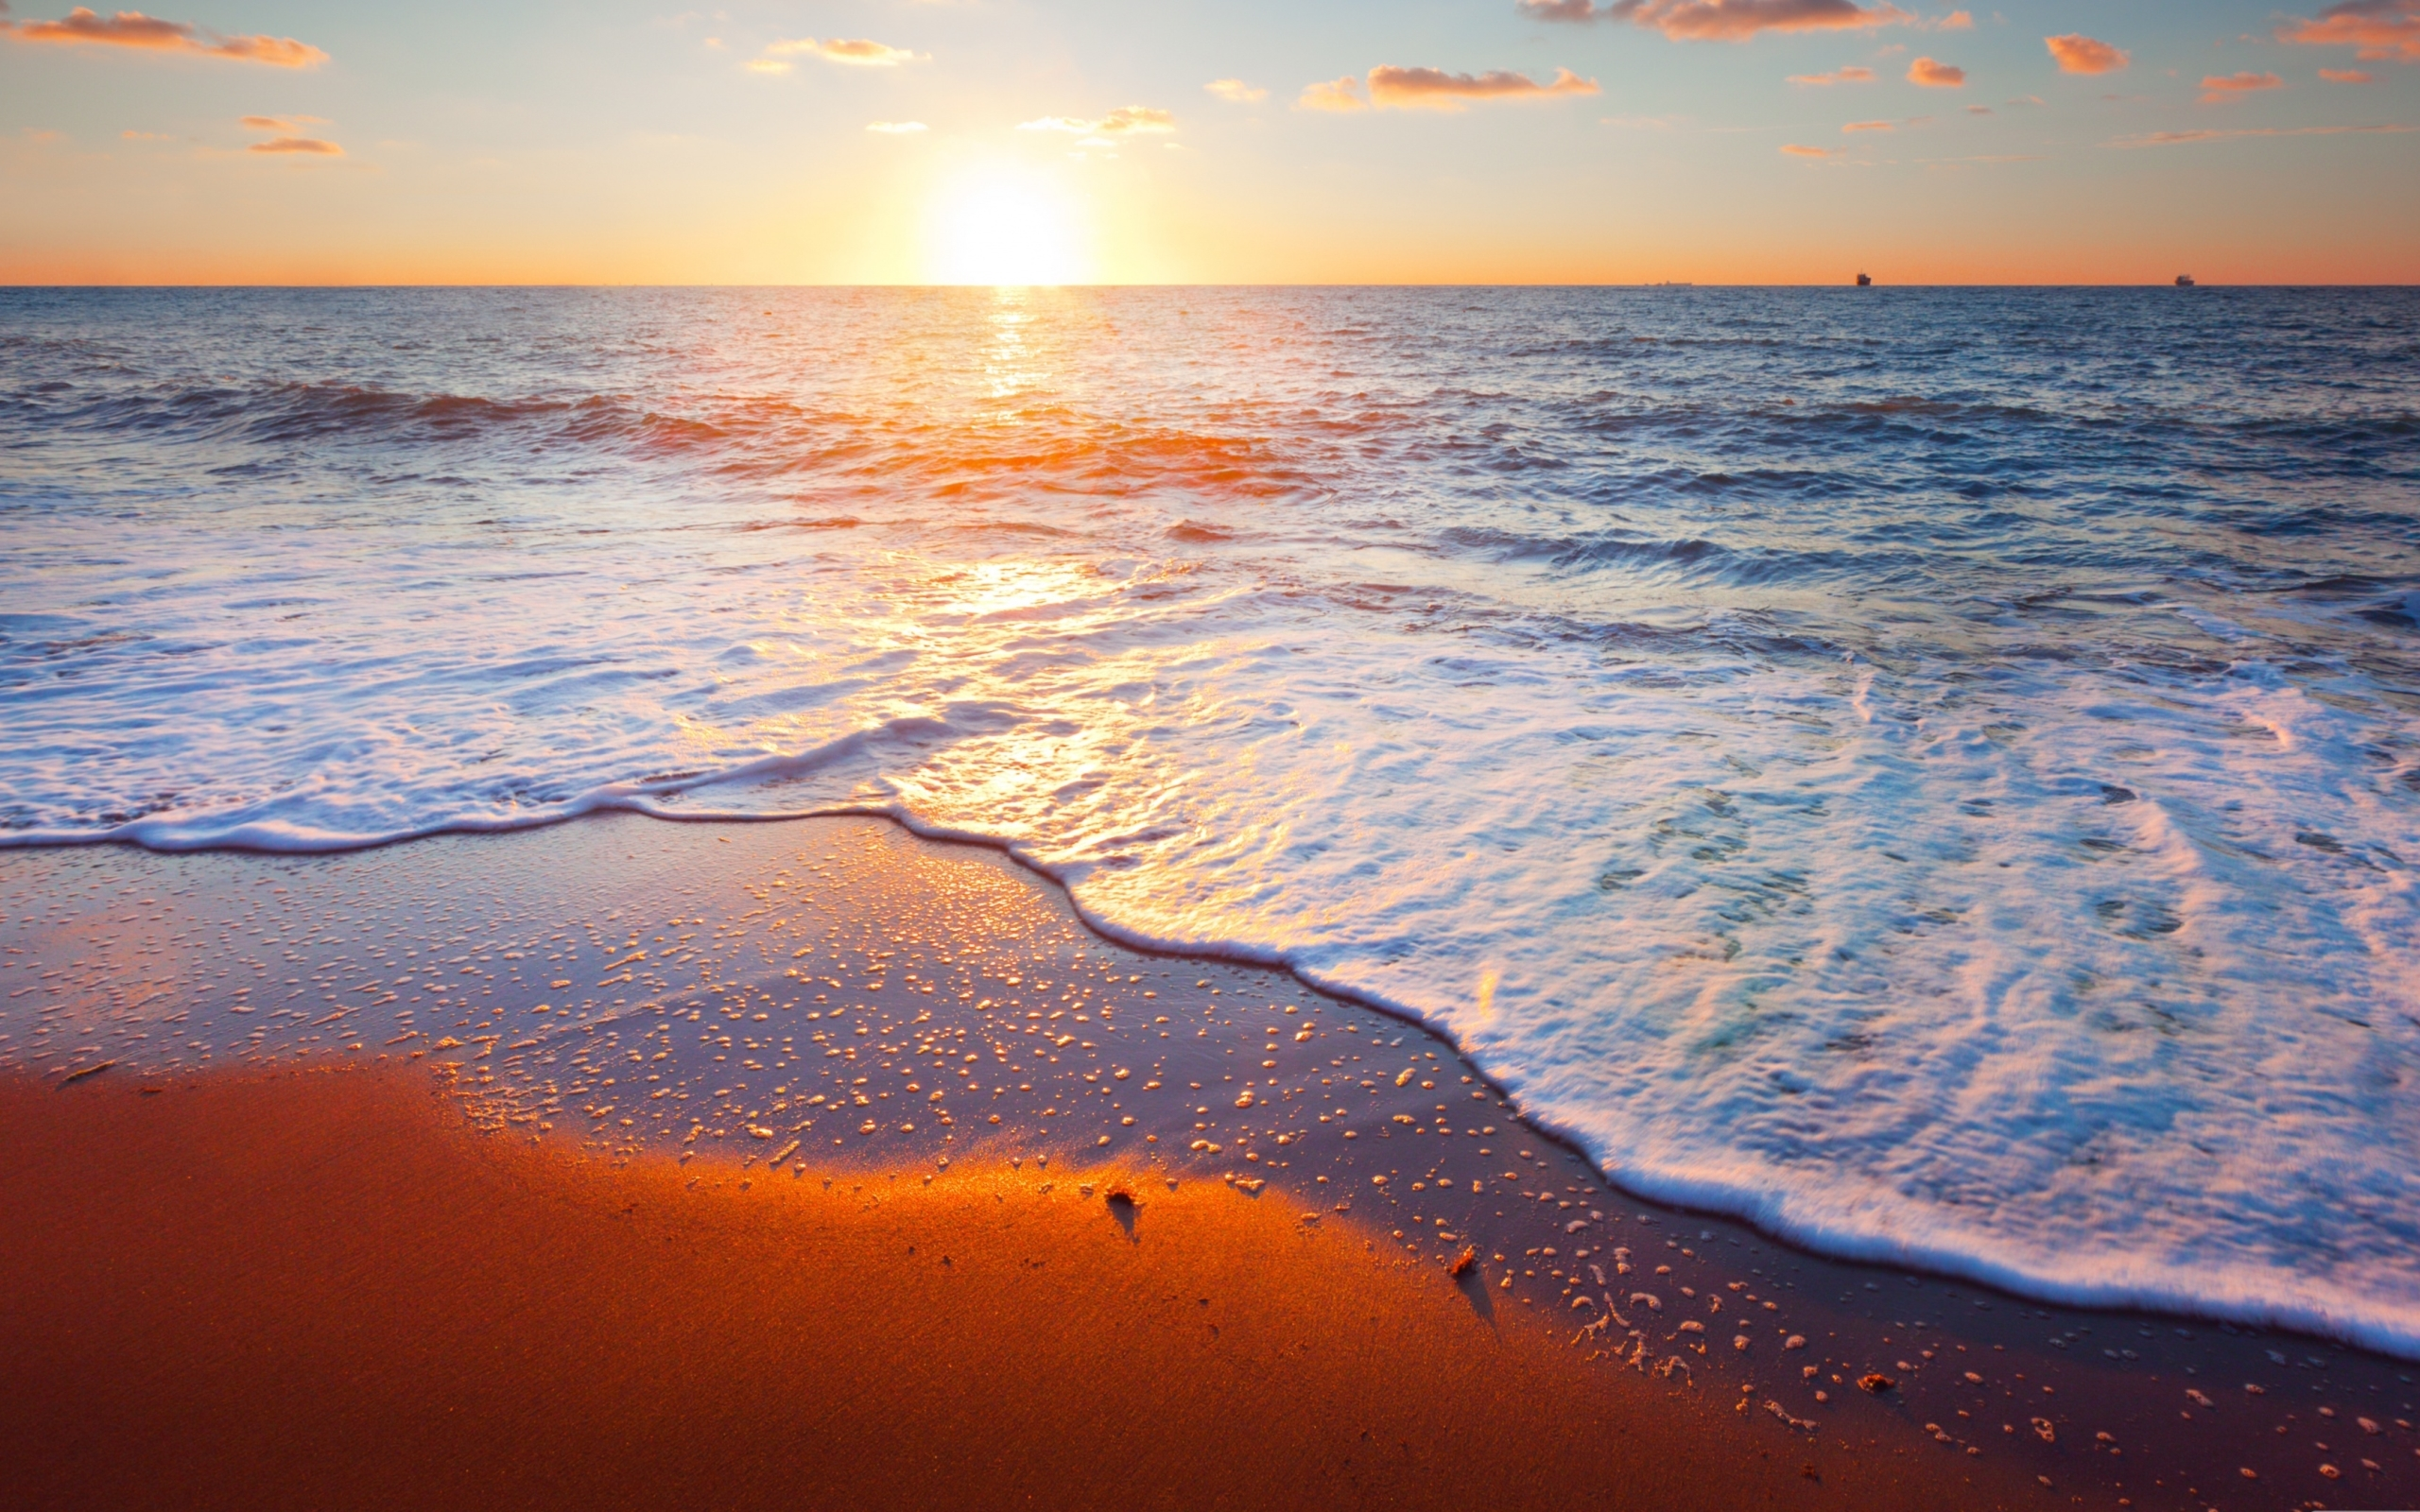 Sunset Sea Images Hd , HD Wallpaper & Backgrounds